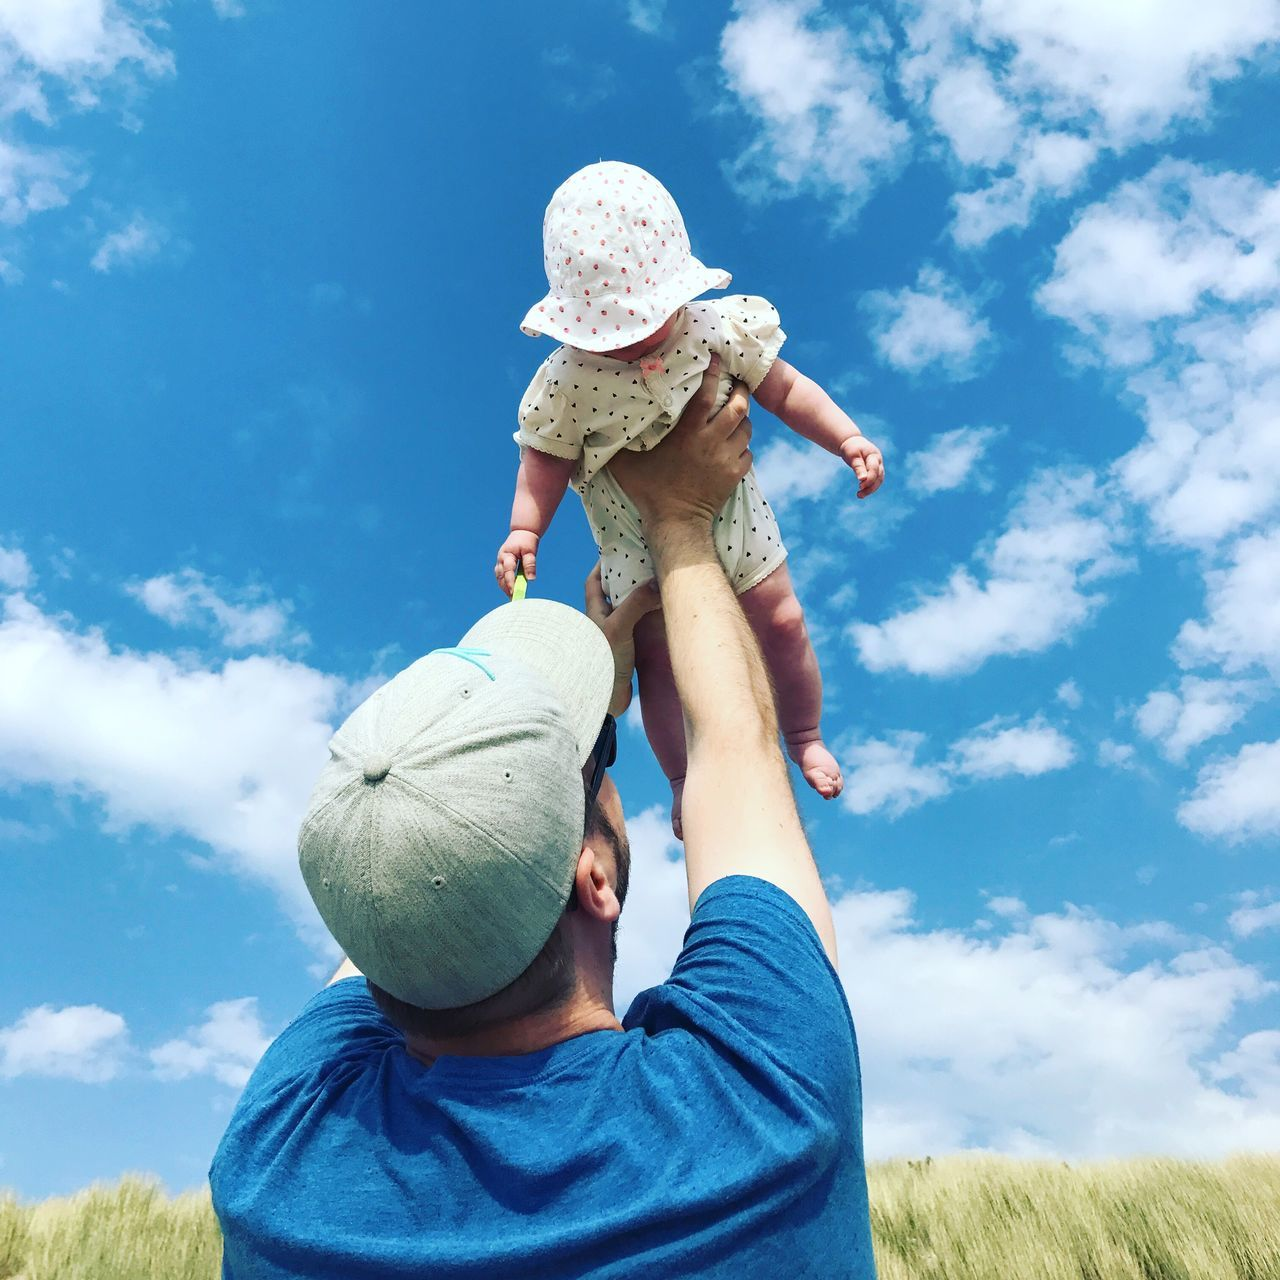 father, family with one child, childhood, sky, family, son, day, boys, field, low angle view, blue, real people, cloud - sky, leisure activity, casual clothing, outdoors, togetherness, daughter, nature, lifestyles, growth, playing, standing, men, bonding, tree, grass